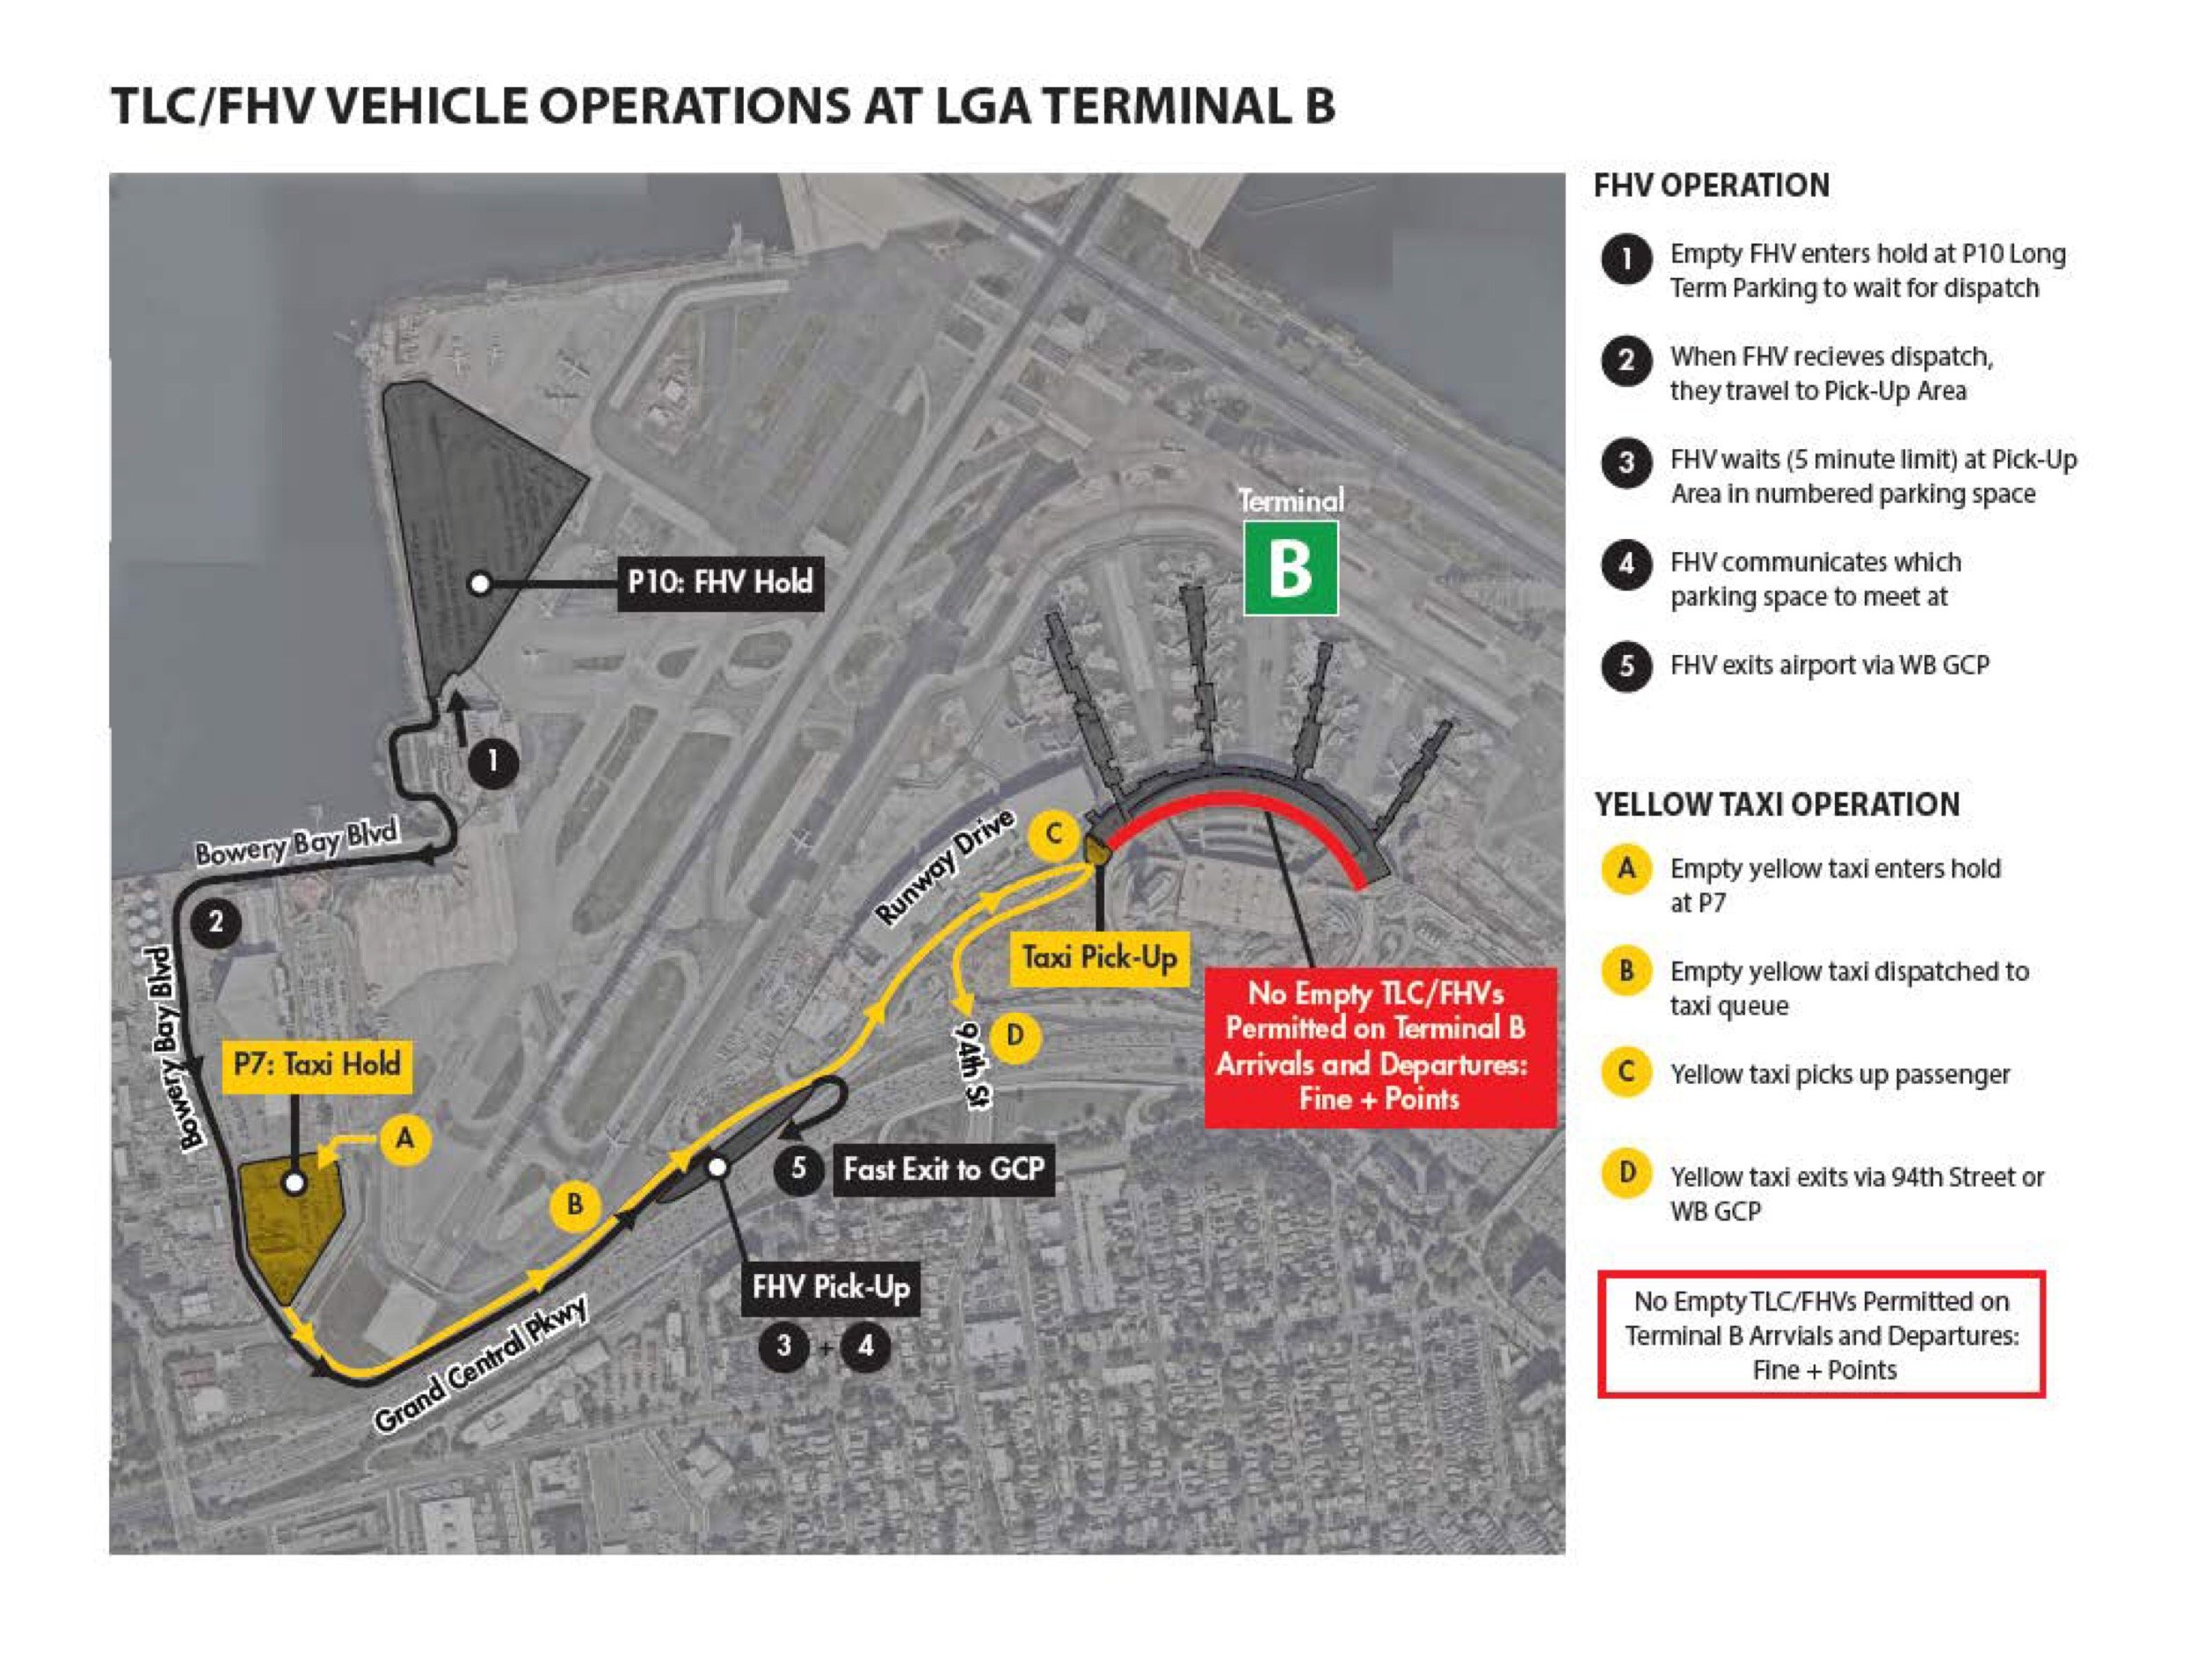 Lga Airport Parking Lot And Passenger Pick Up Location Changes